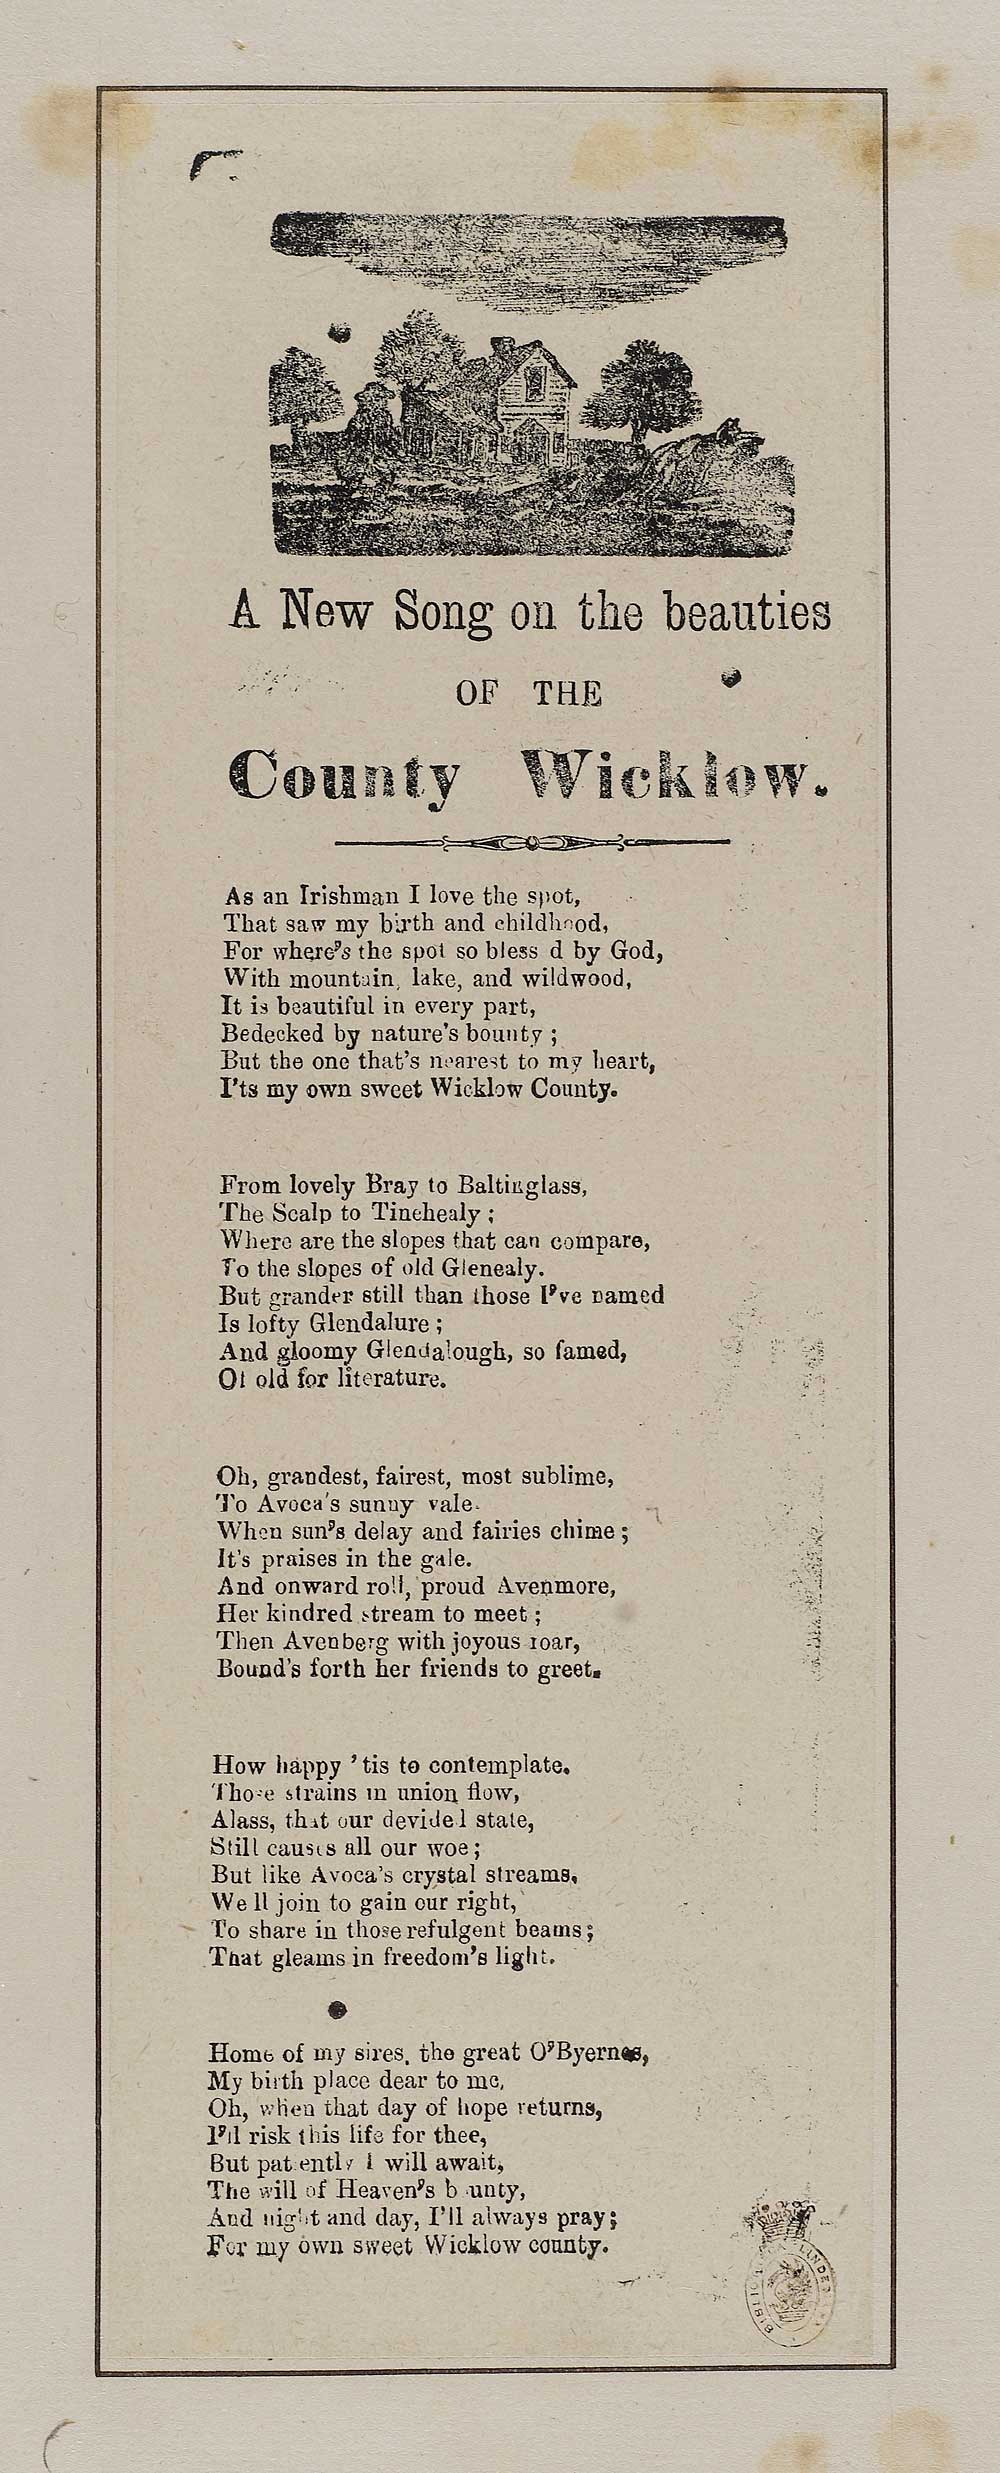 New song on the beauties of the County Wicklow - Ireland